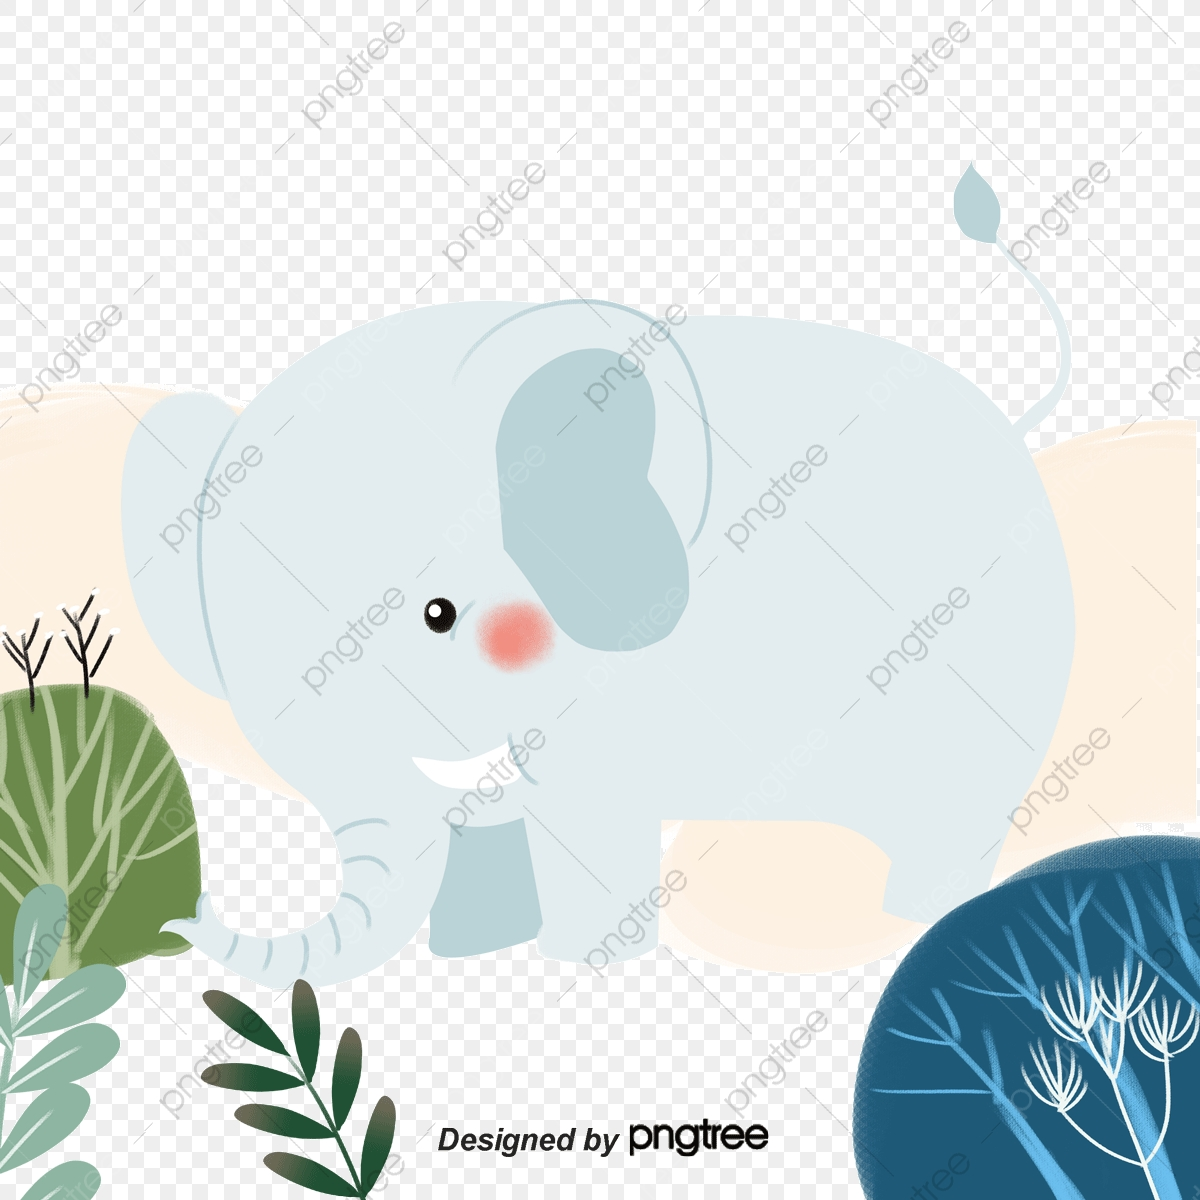 Jungle Elephant Elephant Grass Trees Png Transparent Clipart Image And Psd File For Free Download Download elephant png images transparent gallery. pngtree